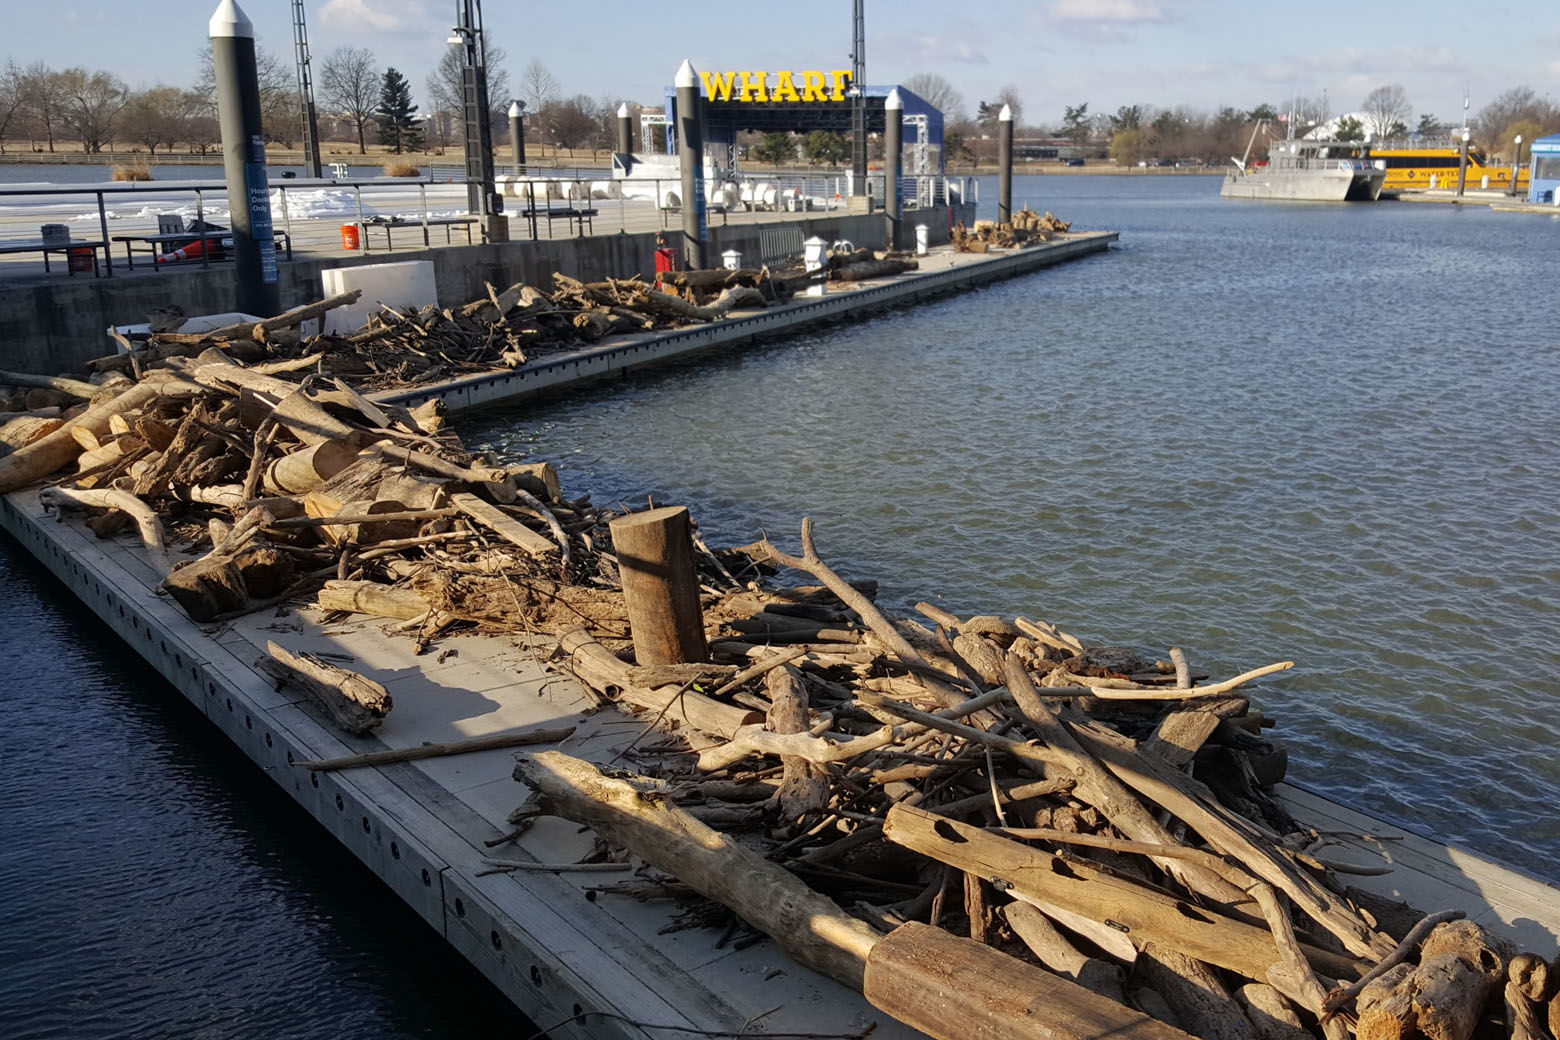 As of Friday, four 30 yard dumpsters of debris had been removed from the channel. (Courtesy Patrick Revord)